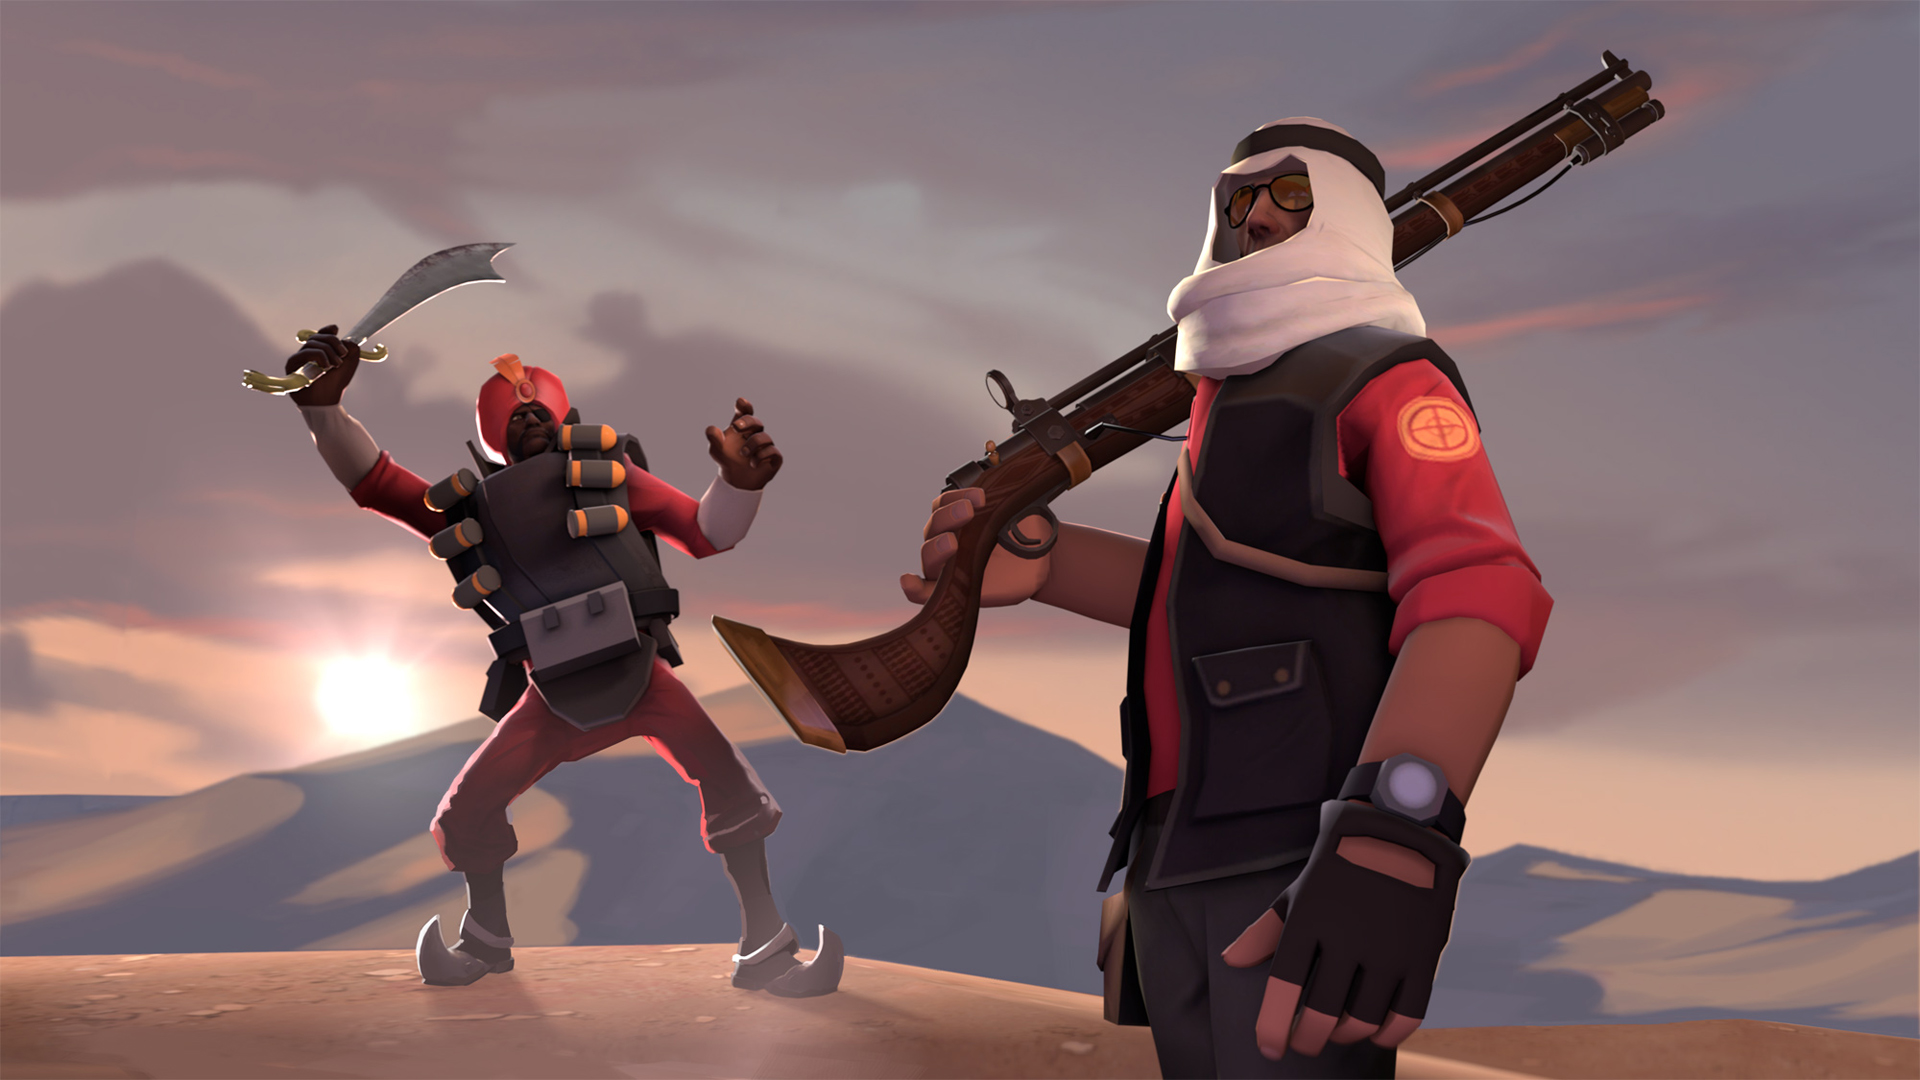 team fortress 2 wallpapers best wallpapers